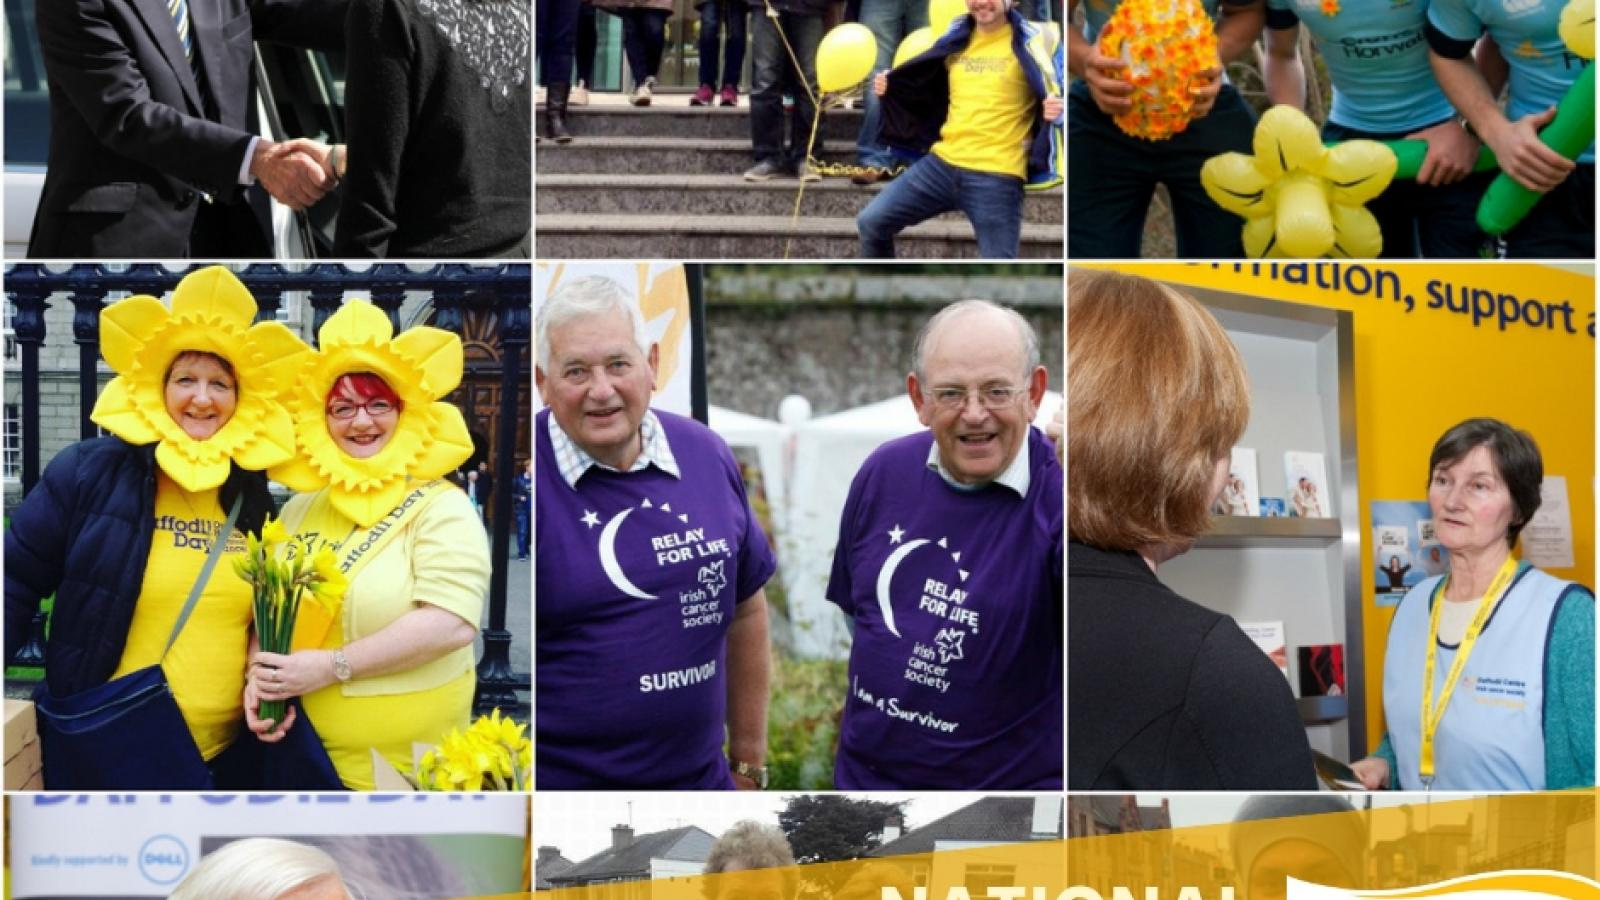 Irish Cancer Society volunteers